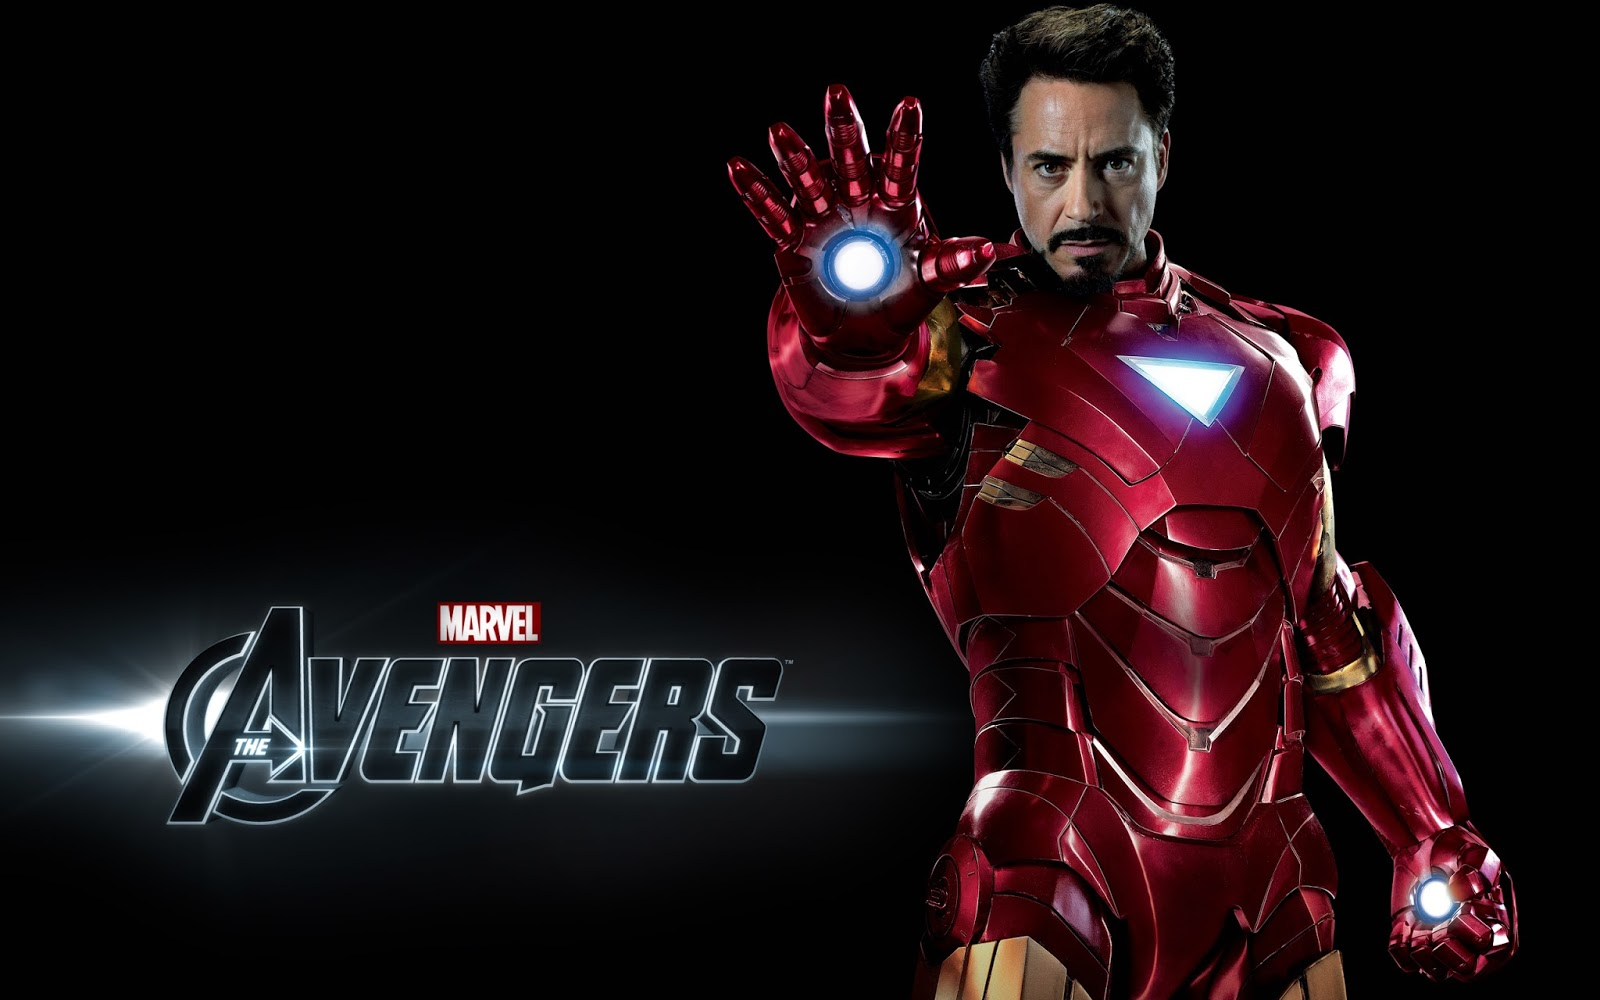 Iron Man in The Avengers Movie Wallpaper HD